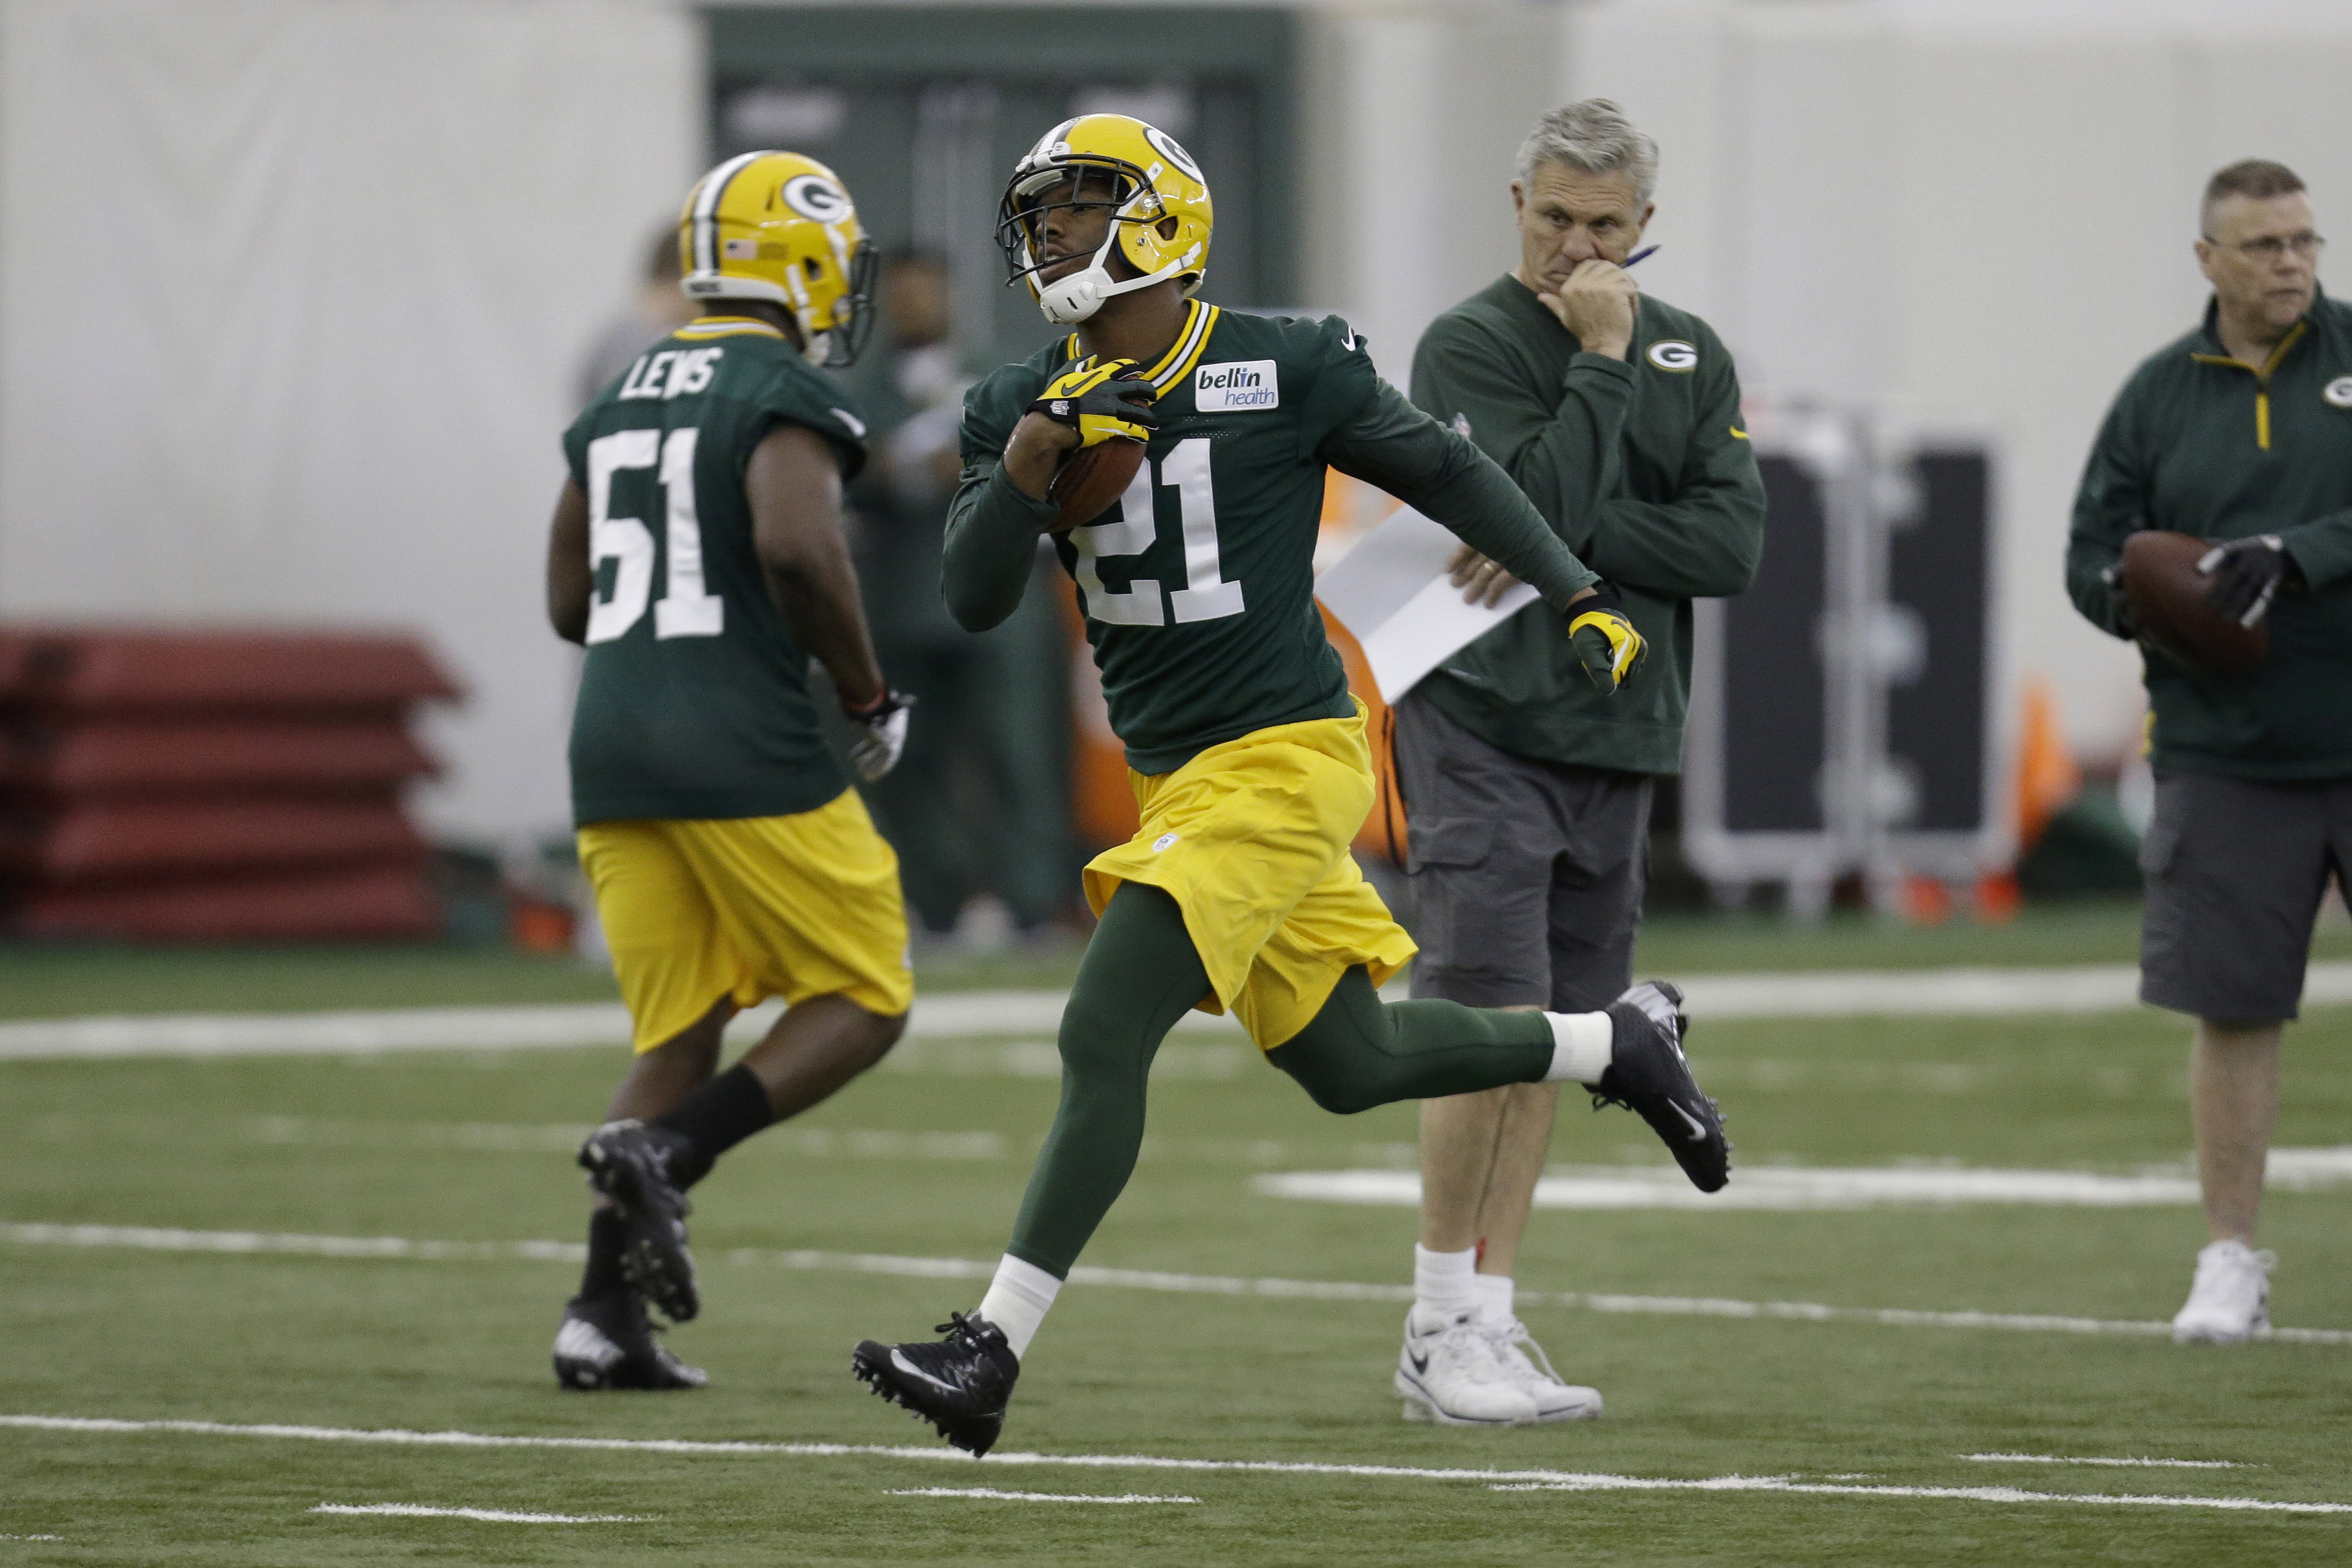 Ha Ha Clinton-Dix (21) and Shaun Lewis (51) work at the Packers' rookie camp.